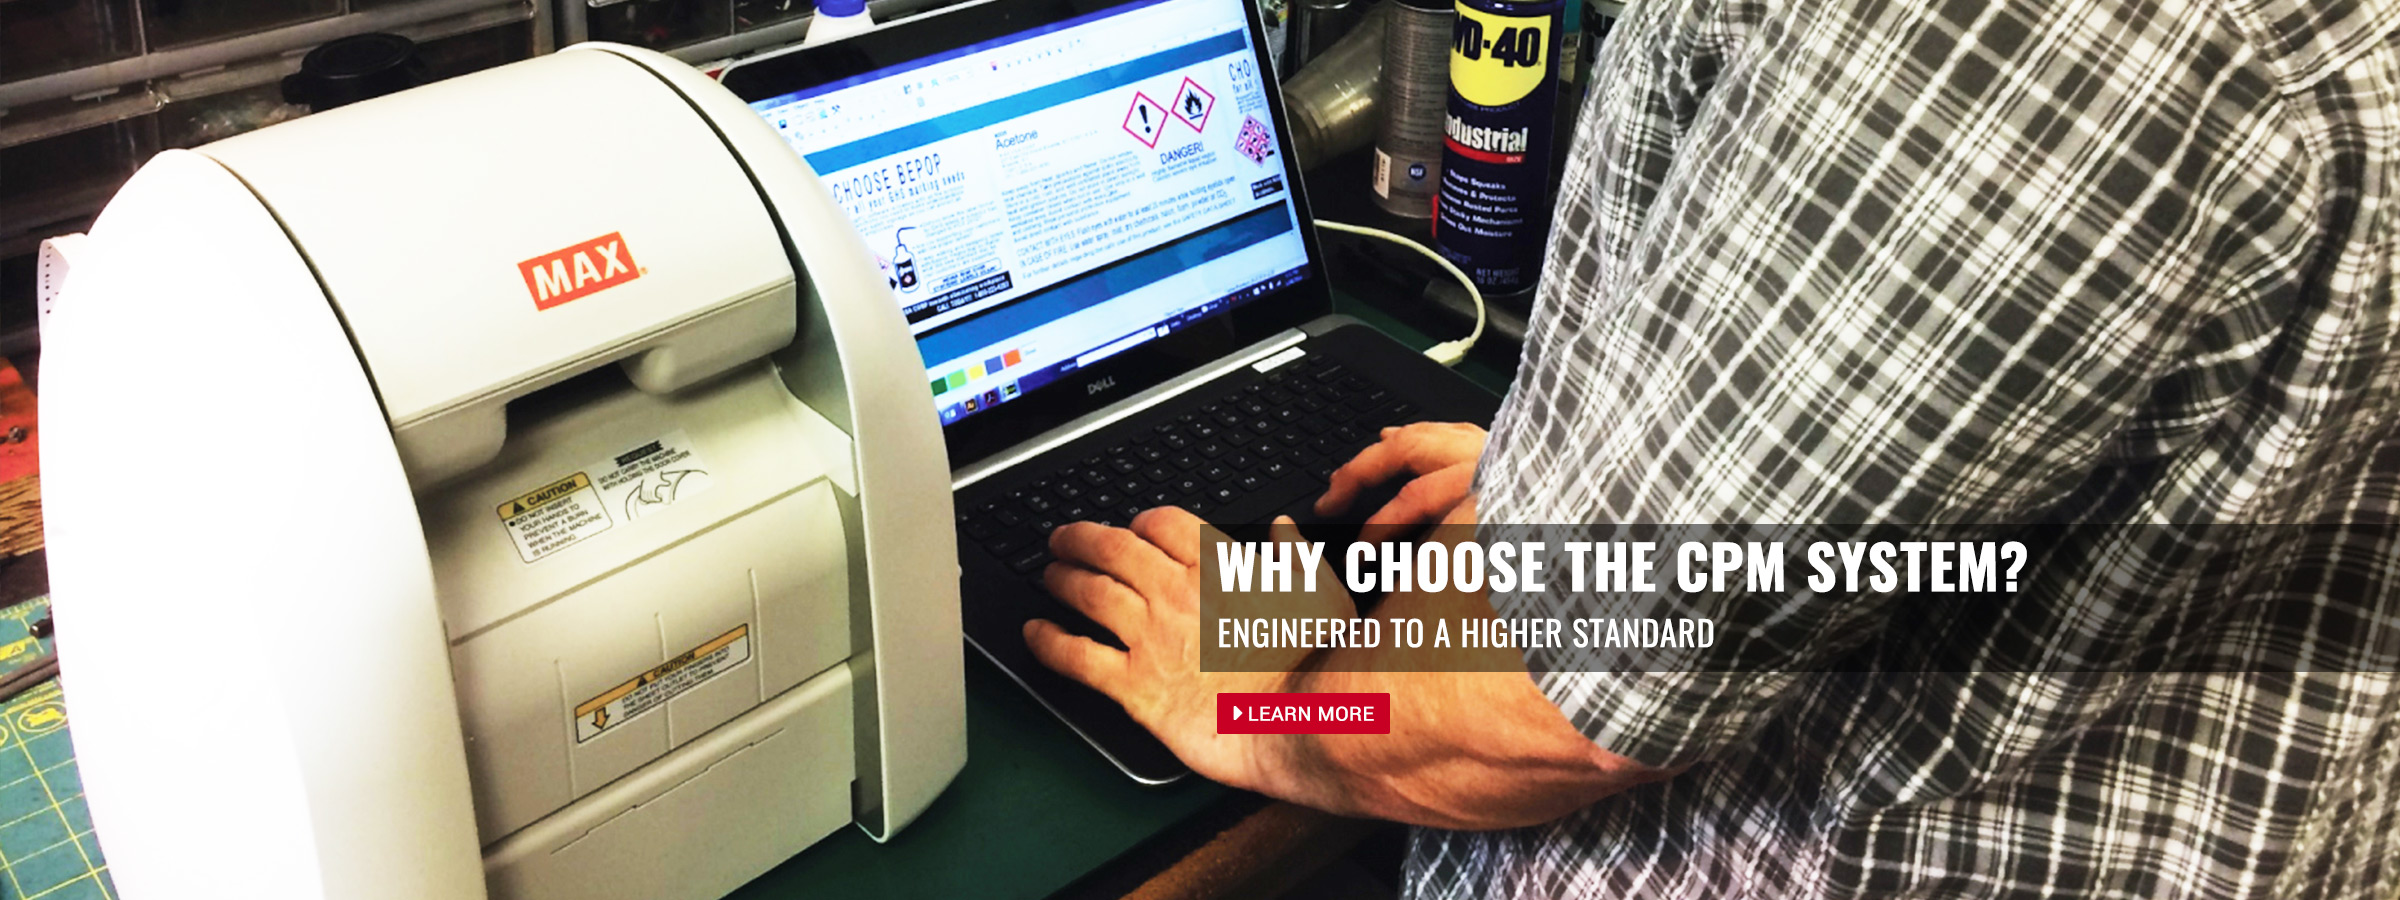 Why Choose the CPM System?